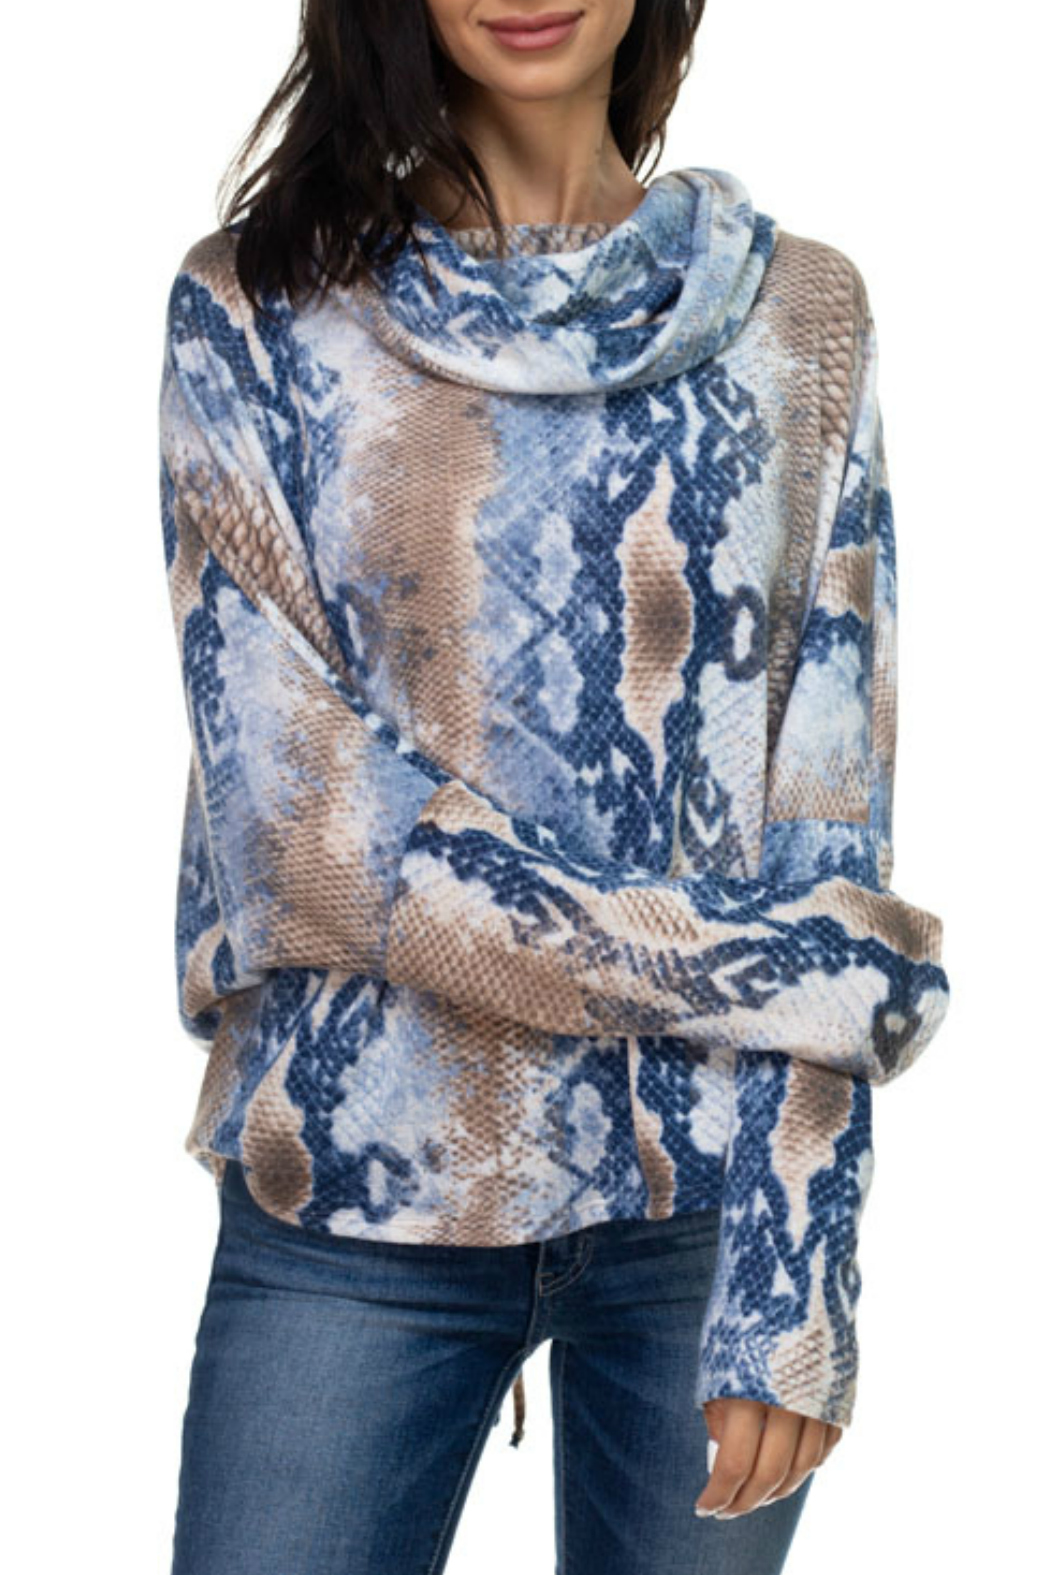 Ariella USA Print Lace-Up Back Cowl Neck Top - Front Cropped Image